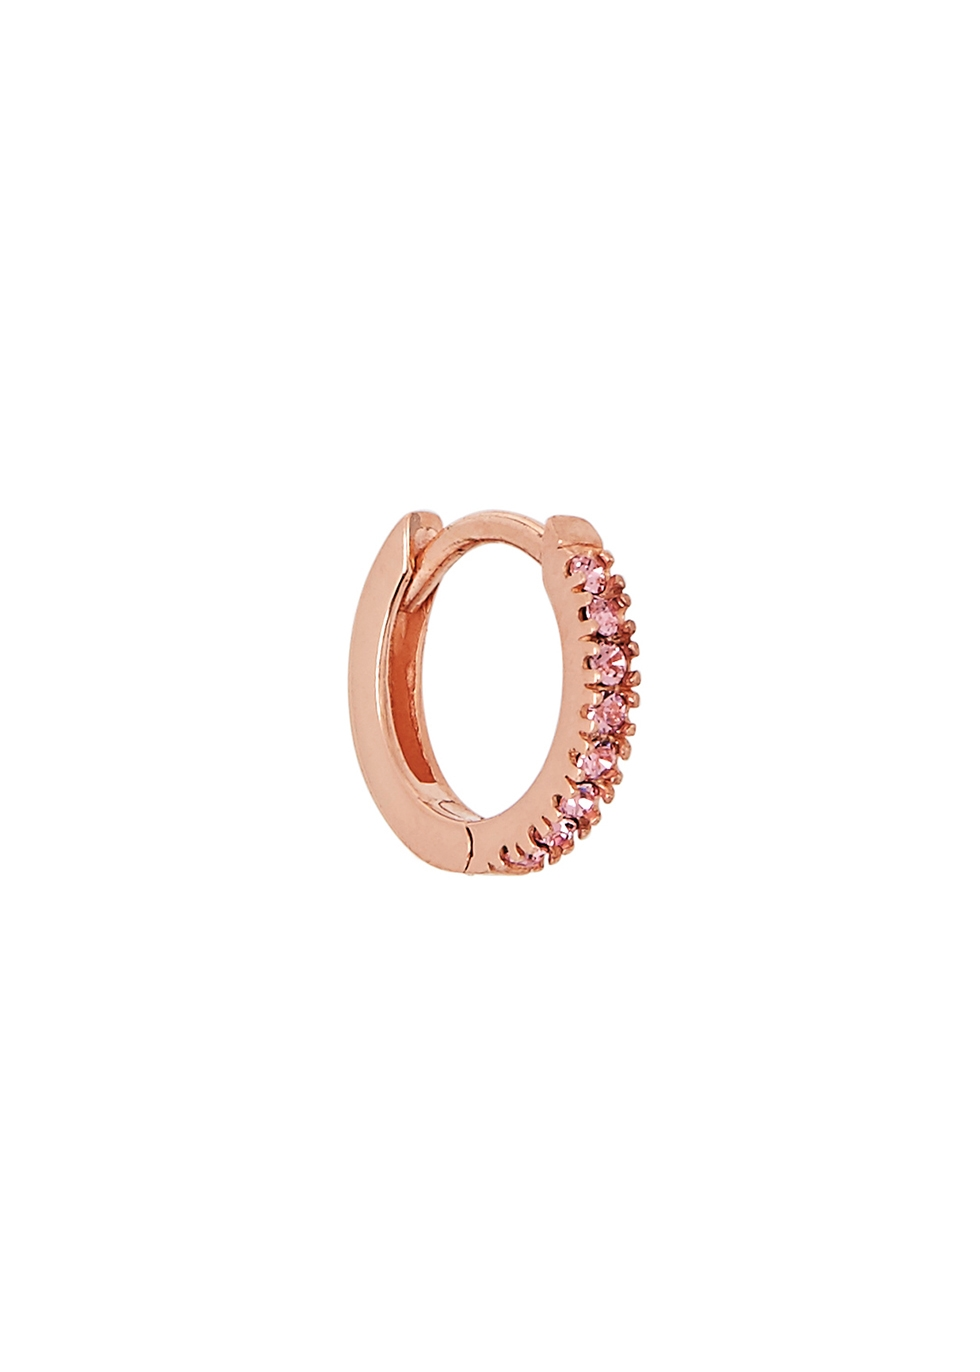 ROSIE FORTESCUE 18Ct Rose Gold-Plated Hoop Earring